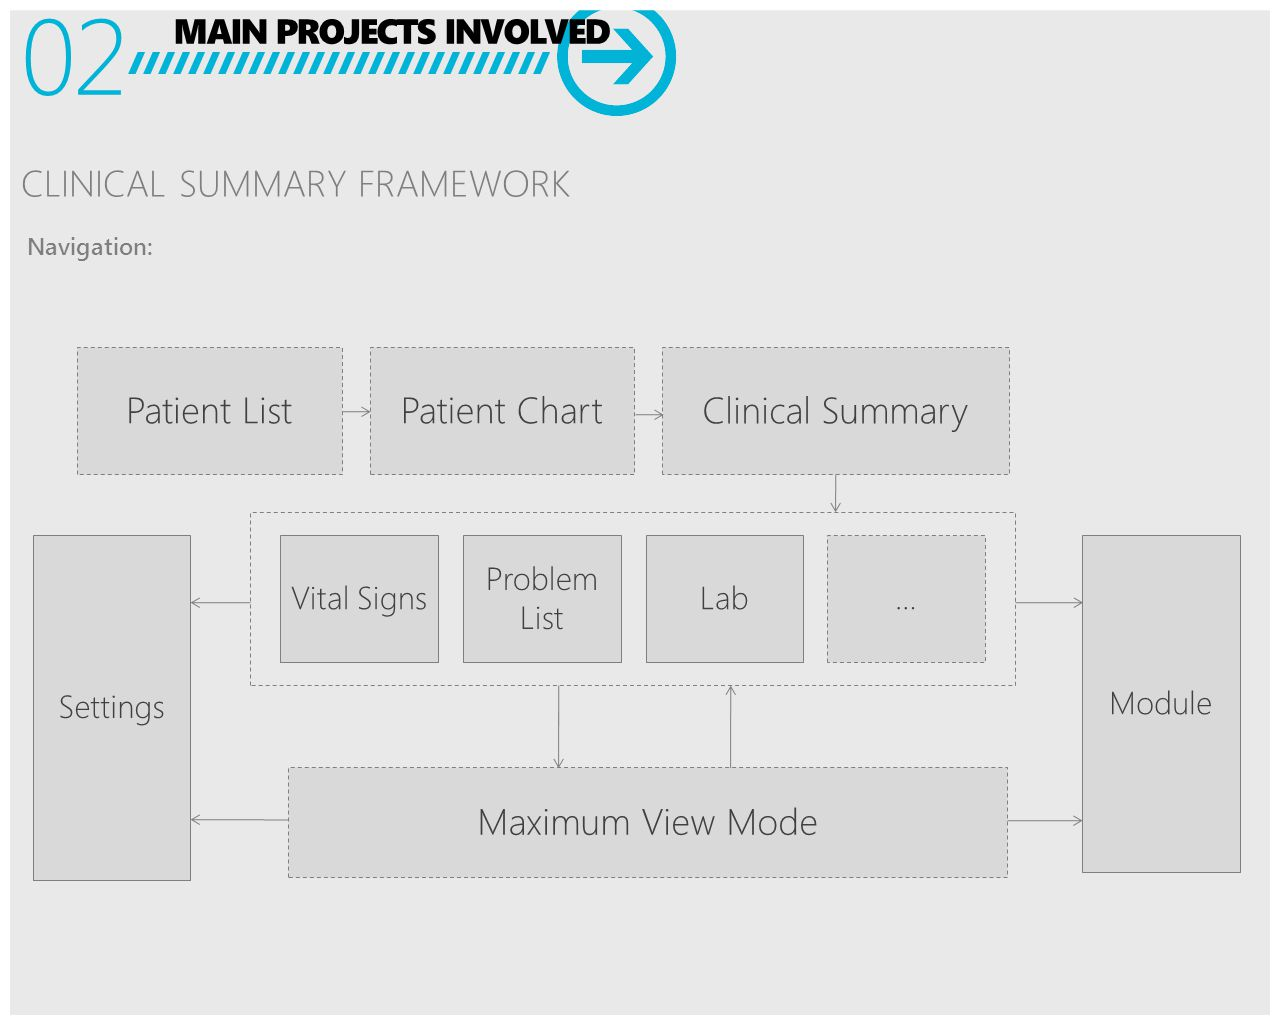 MAIN PROJECTS INVOLVED 02 CLINICAL SUMMARY FRAMEWORK Patient List Clinical Summary Patient Chart Vital Signs Problem List Lab… Maximum View Mode Settings Navigation: Module